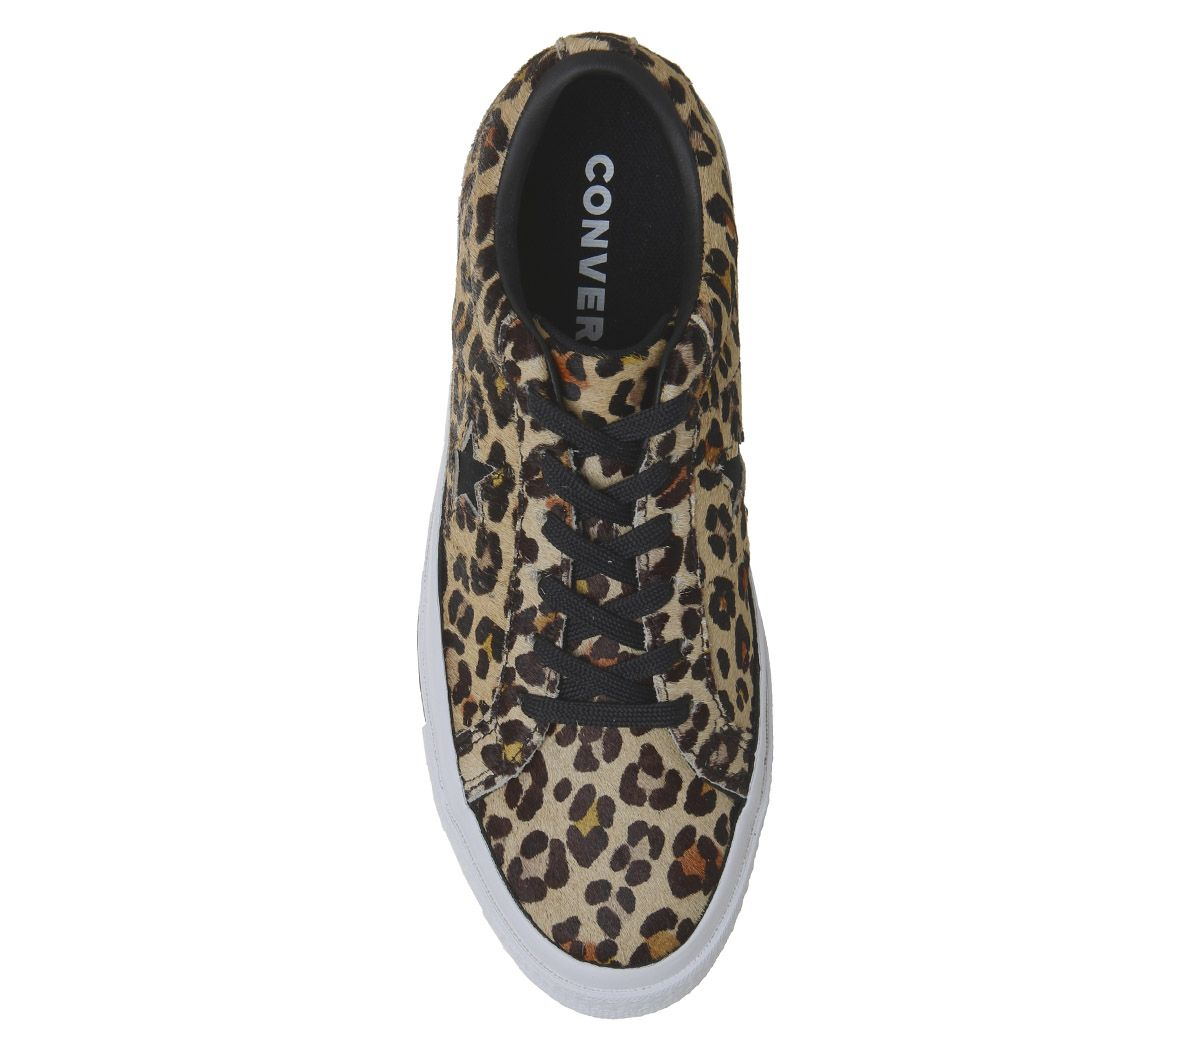 Womens Converse One Star Trainers Leopard Black White Trainers Shoes